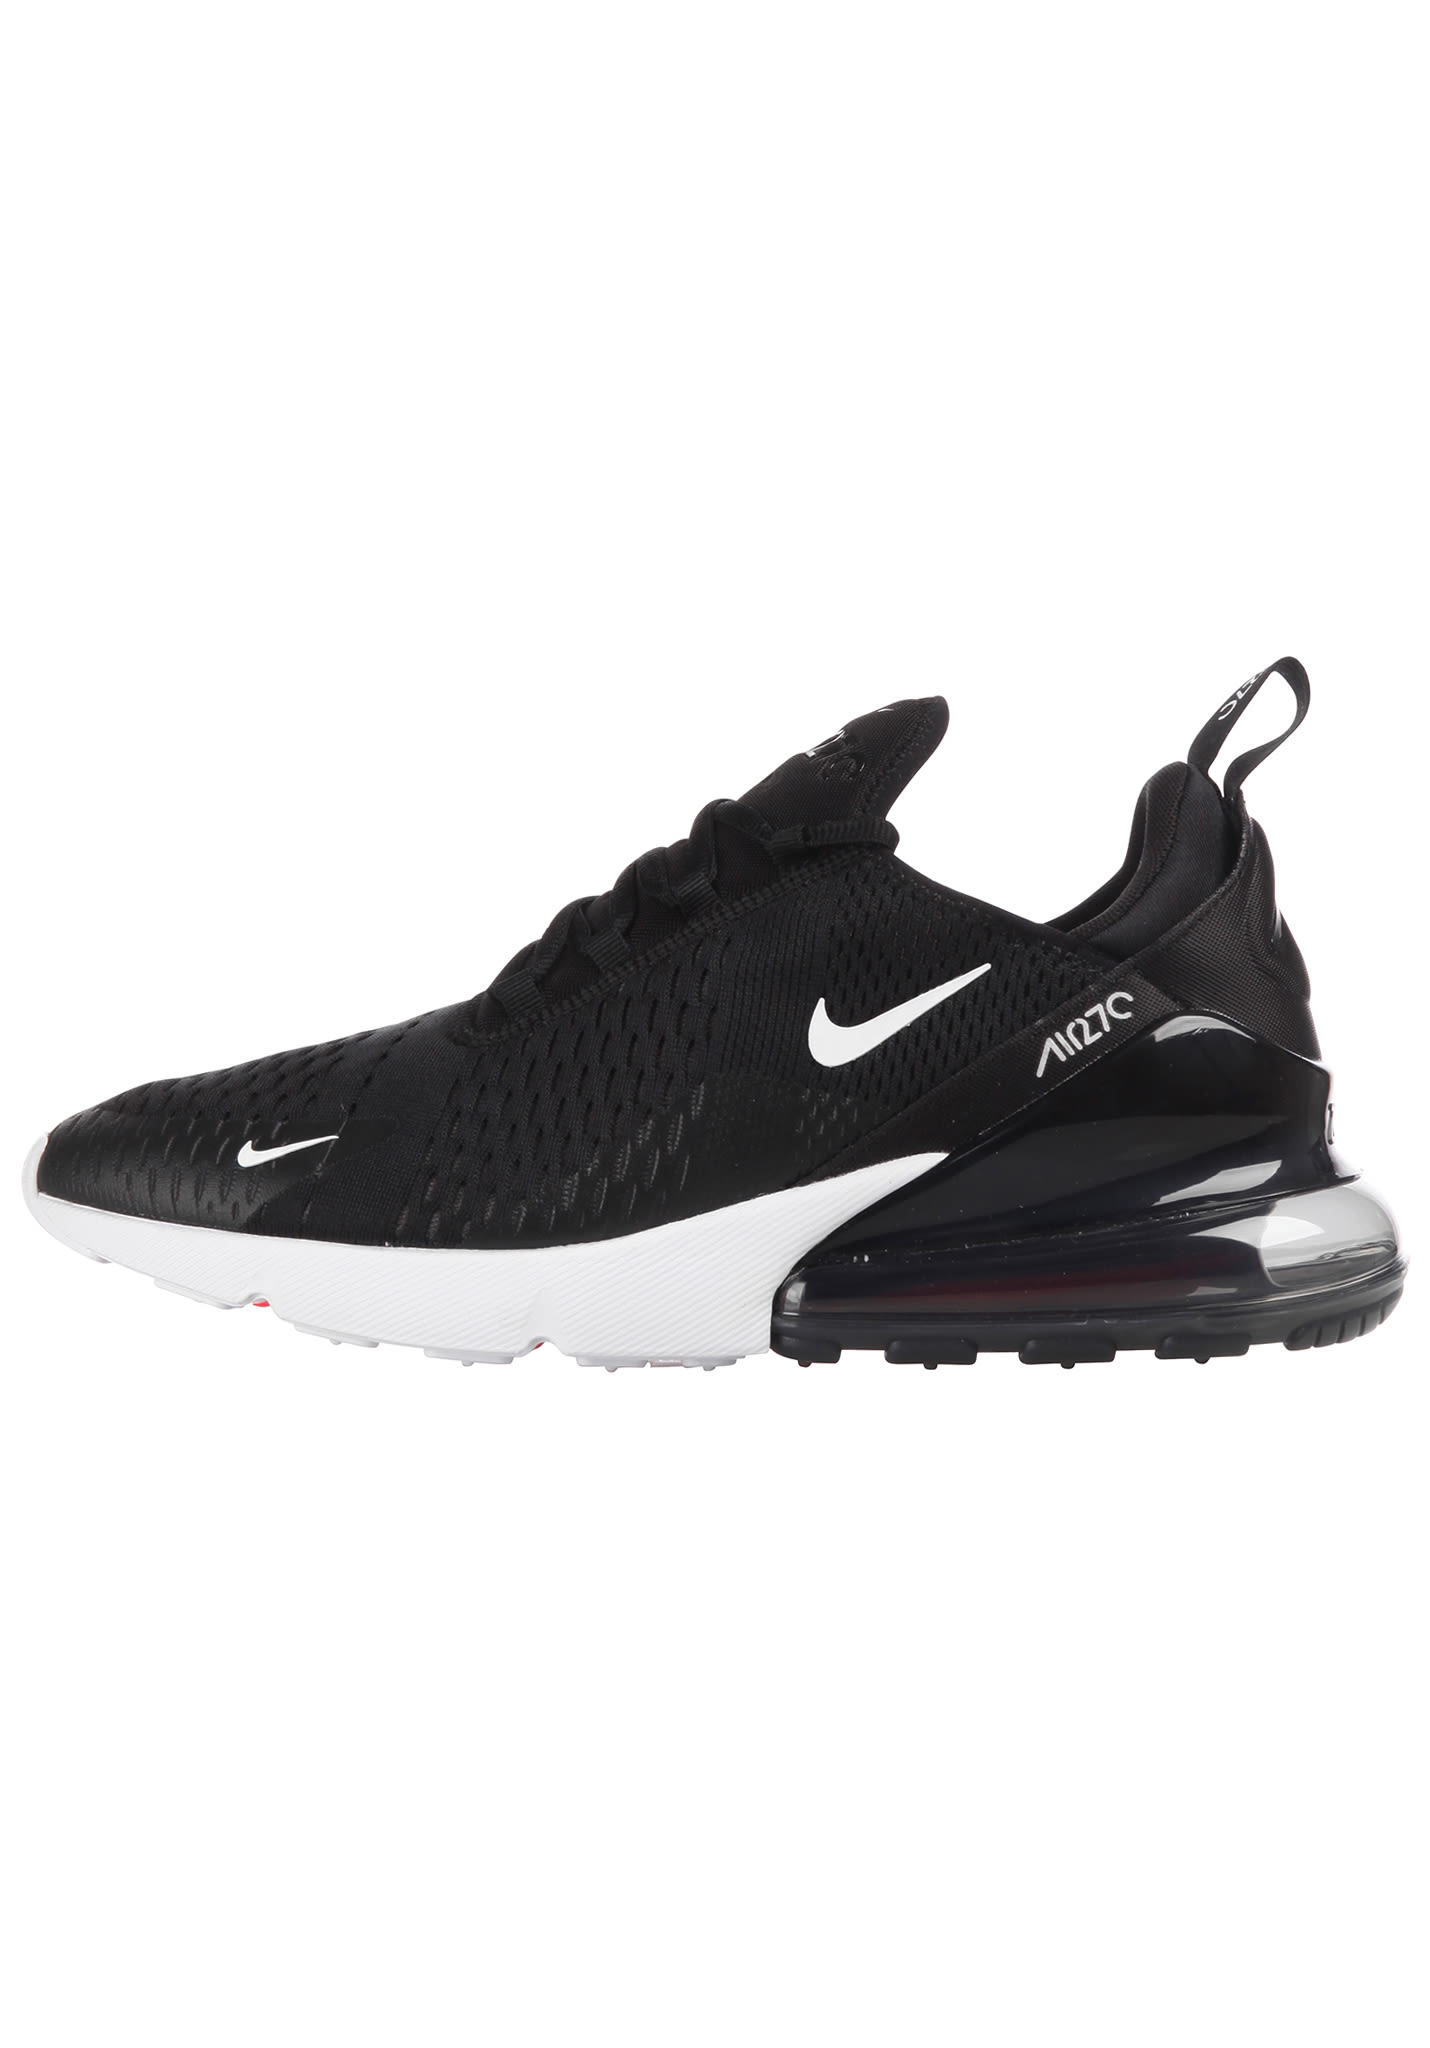 new concept 966b1 37ae7 NIKE SPORTSWEAR Air Max 270 - Sneakers for Men - Black - Planet Sports